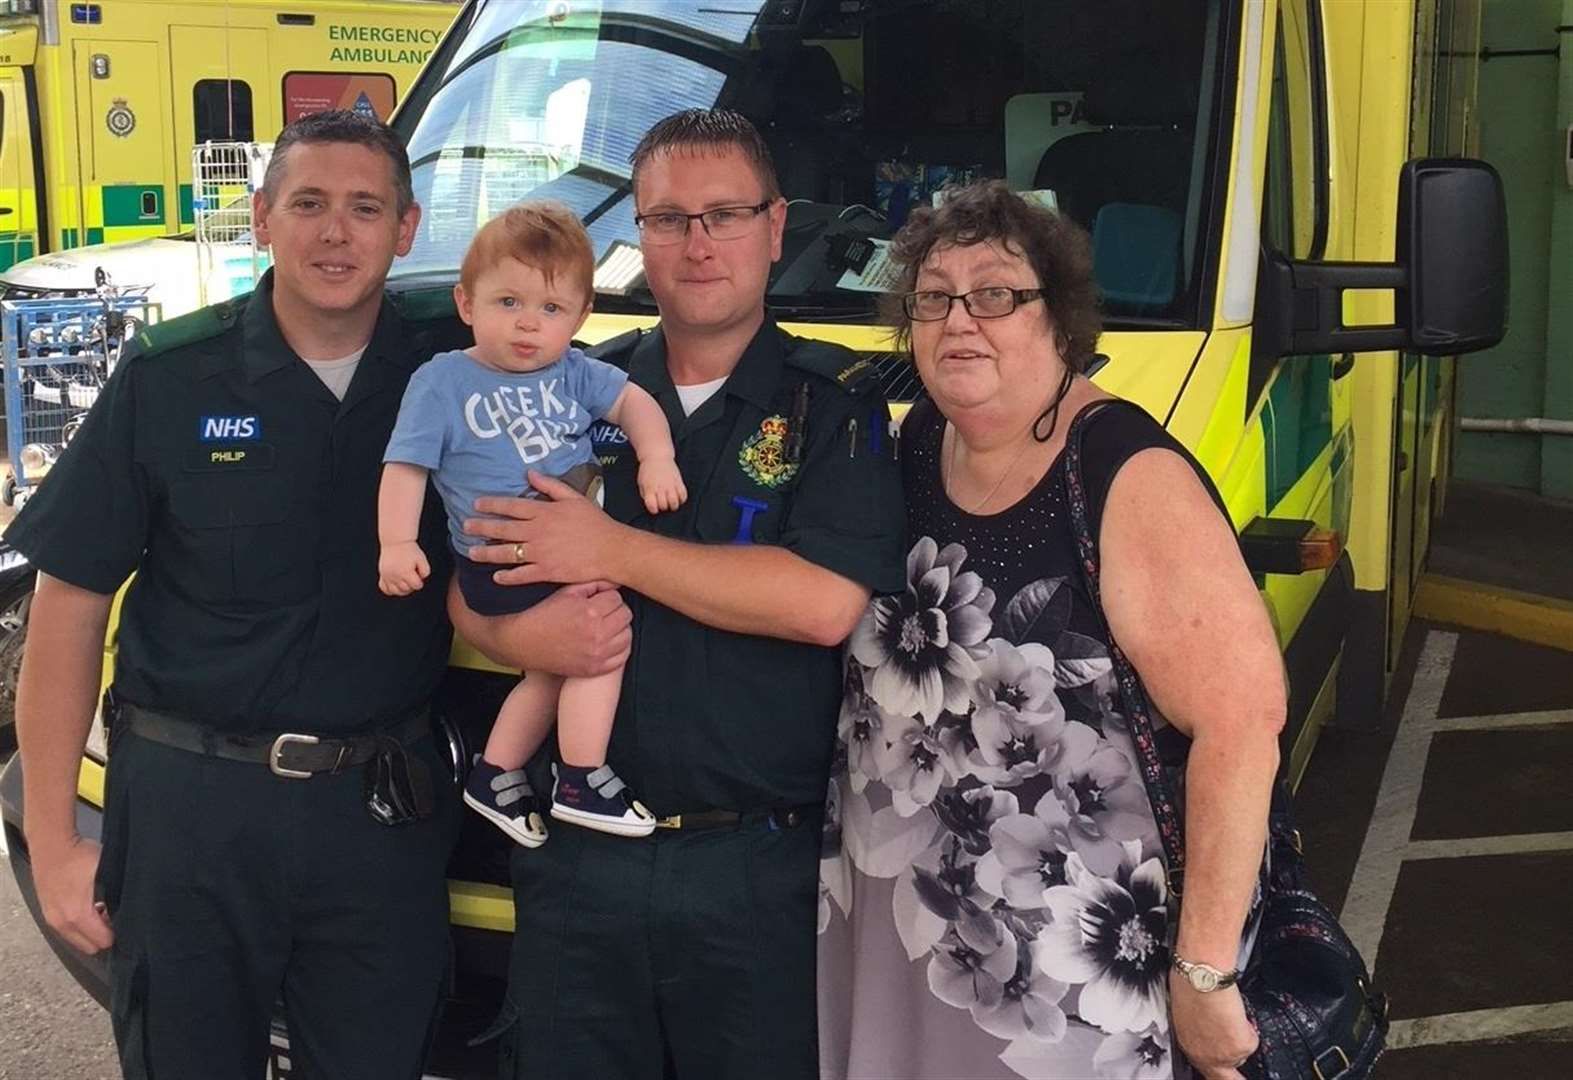 Gran visits medics who saved her life after heart attack